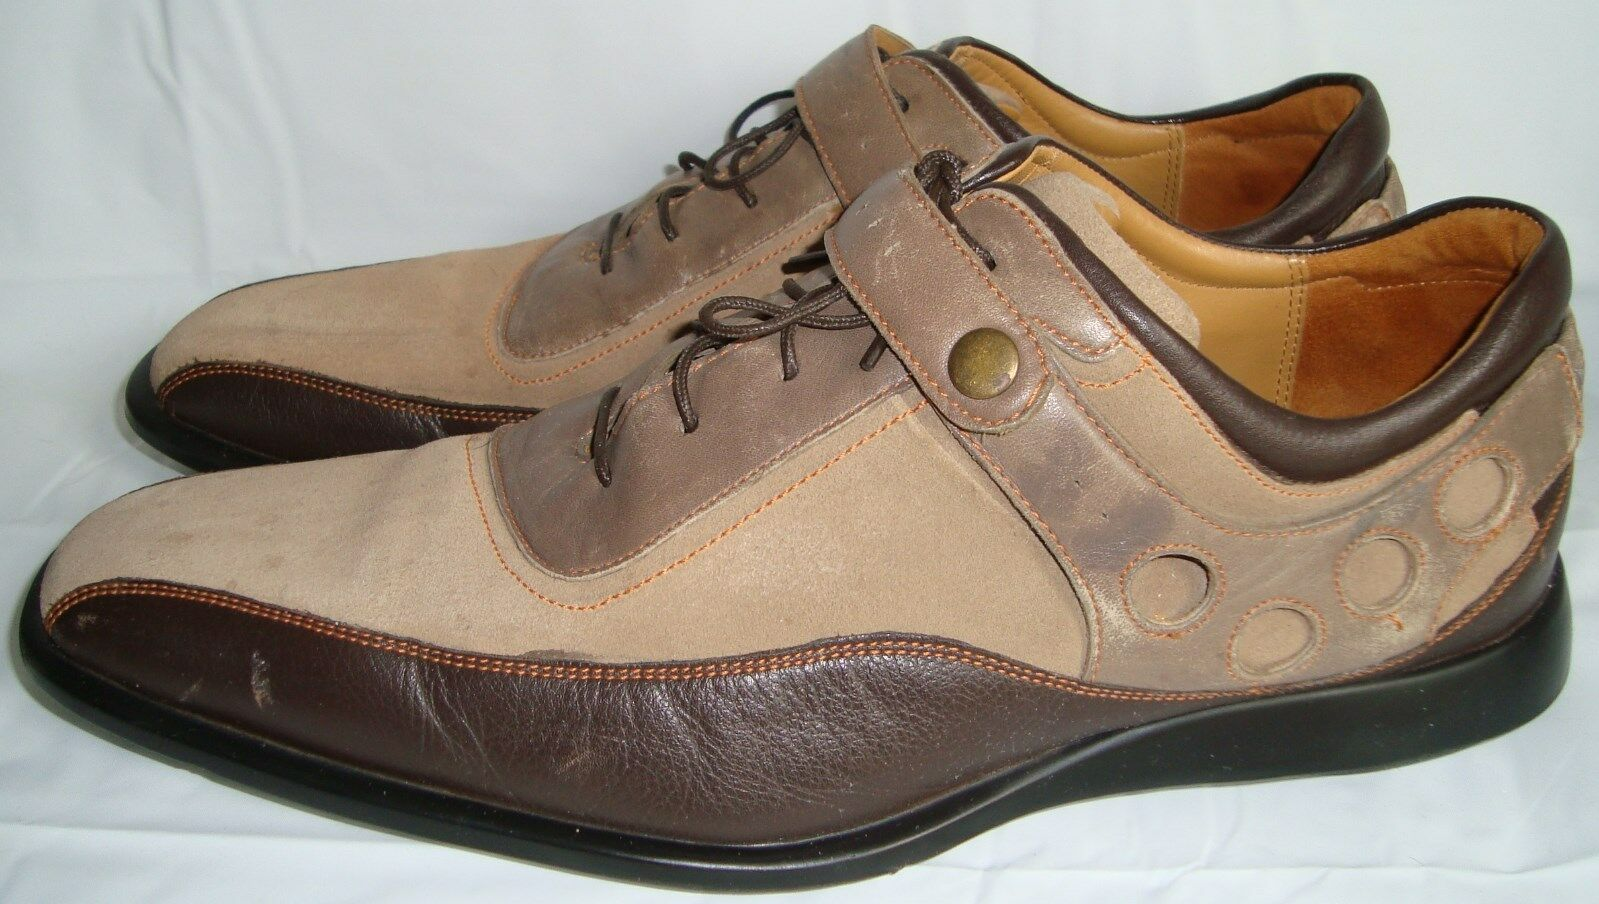 Cole Haan  Braun Tri-Farbeed Oxford Schuhes 10 Spectator Bicycle Toe Schuhes Oxford 10M fb17a7